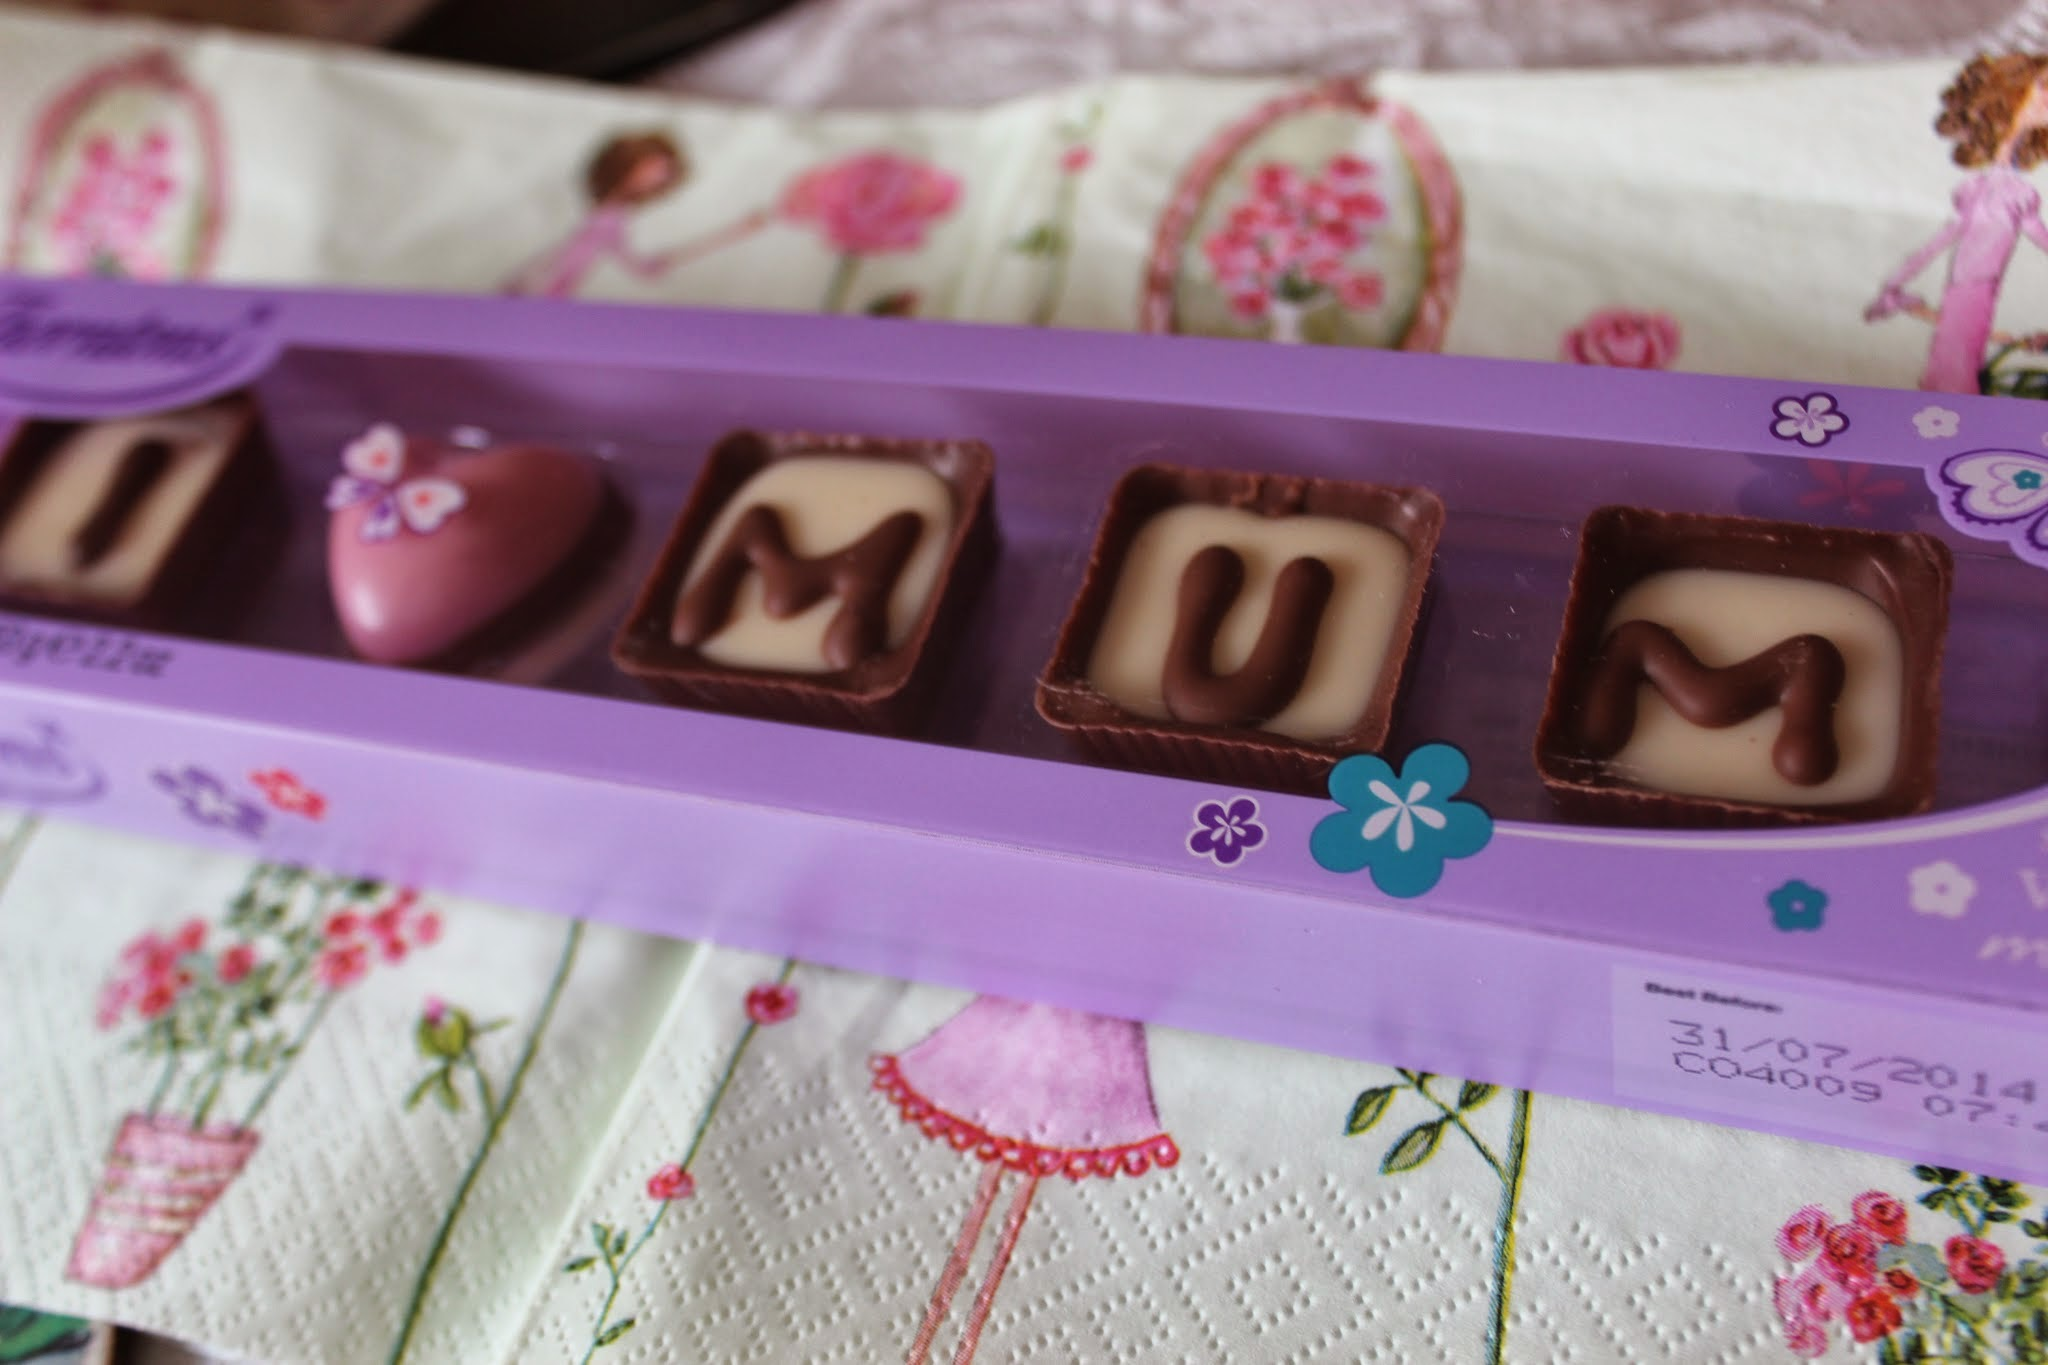 mother's day chocolates